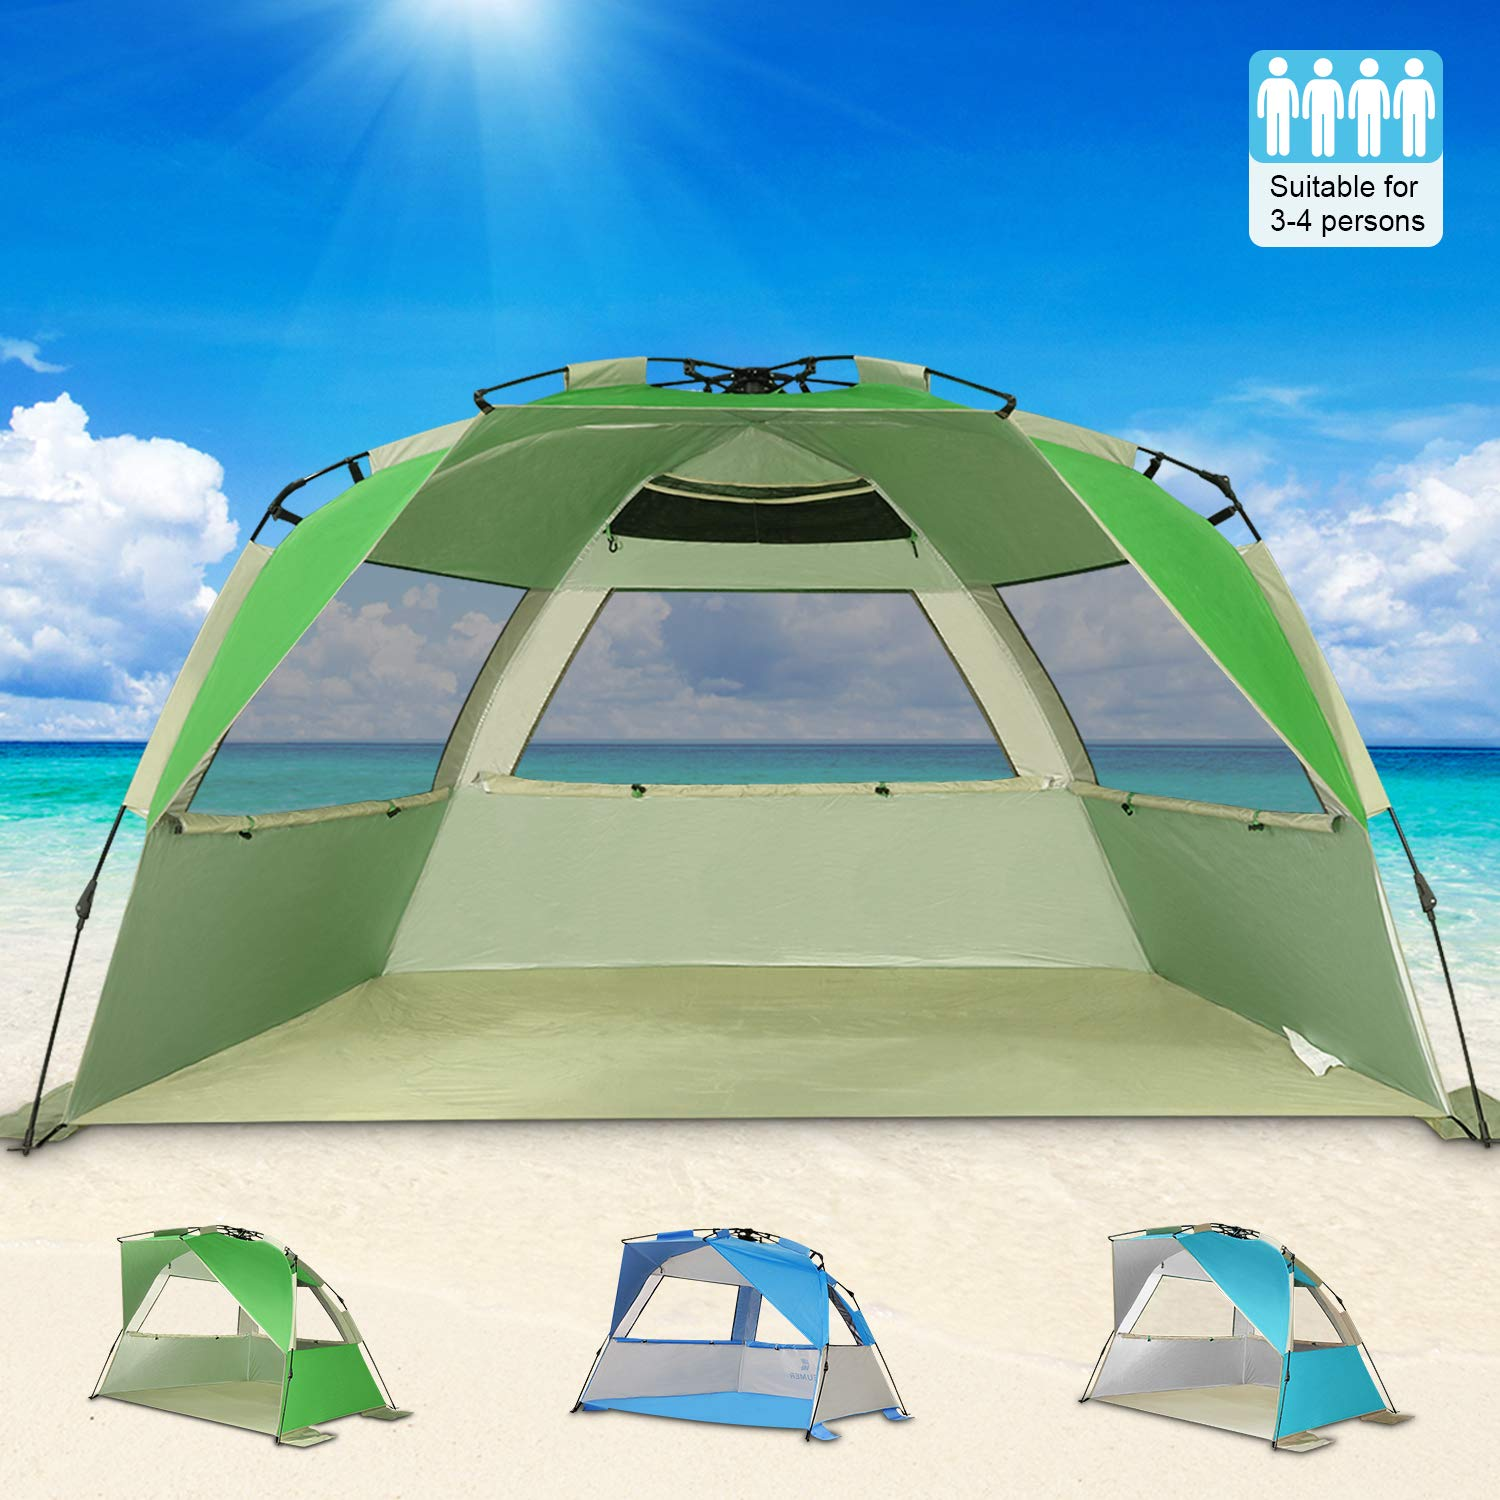 online retailer 93916 dd9e9 G4Free Easy Set up Beach Tent Deluxe XL, Portable 4 Person Pop up Sun  Shelter UPF 50+ UV Protection Large Family Beach Shade